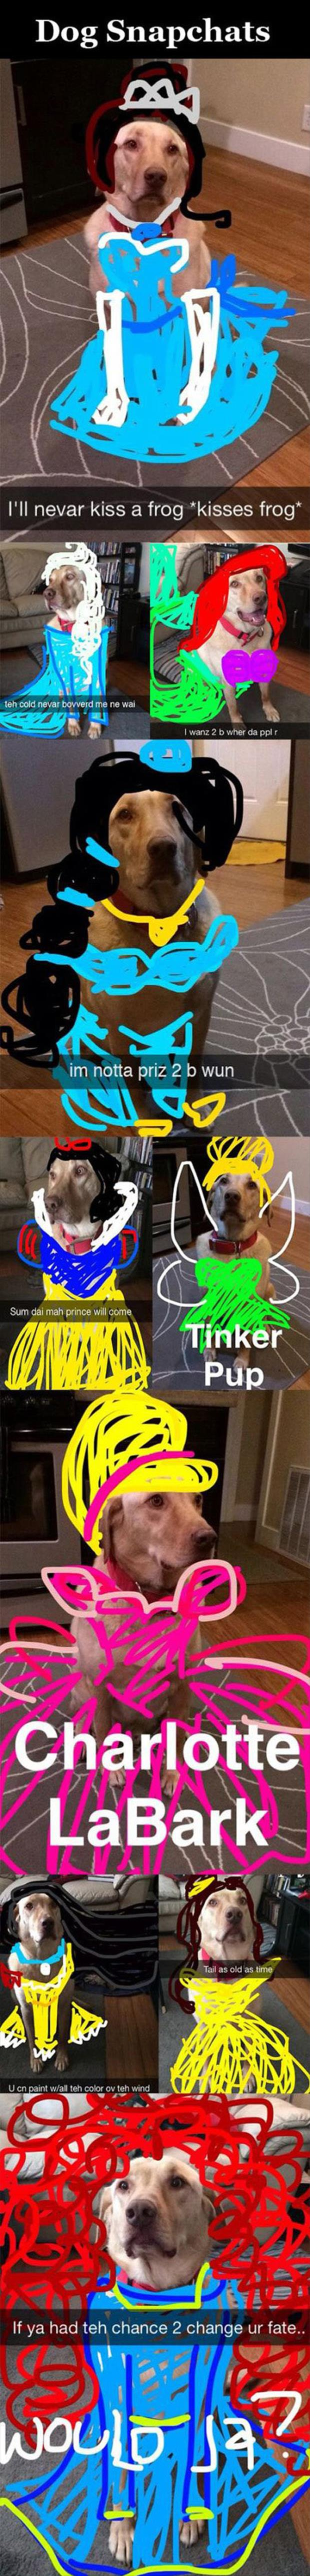 the dog snapchats